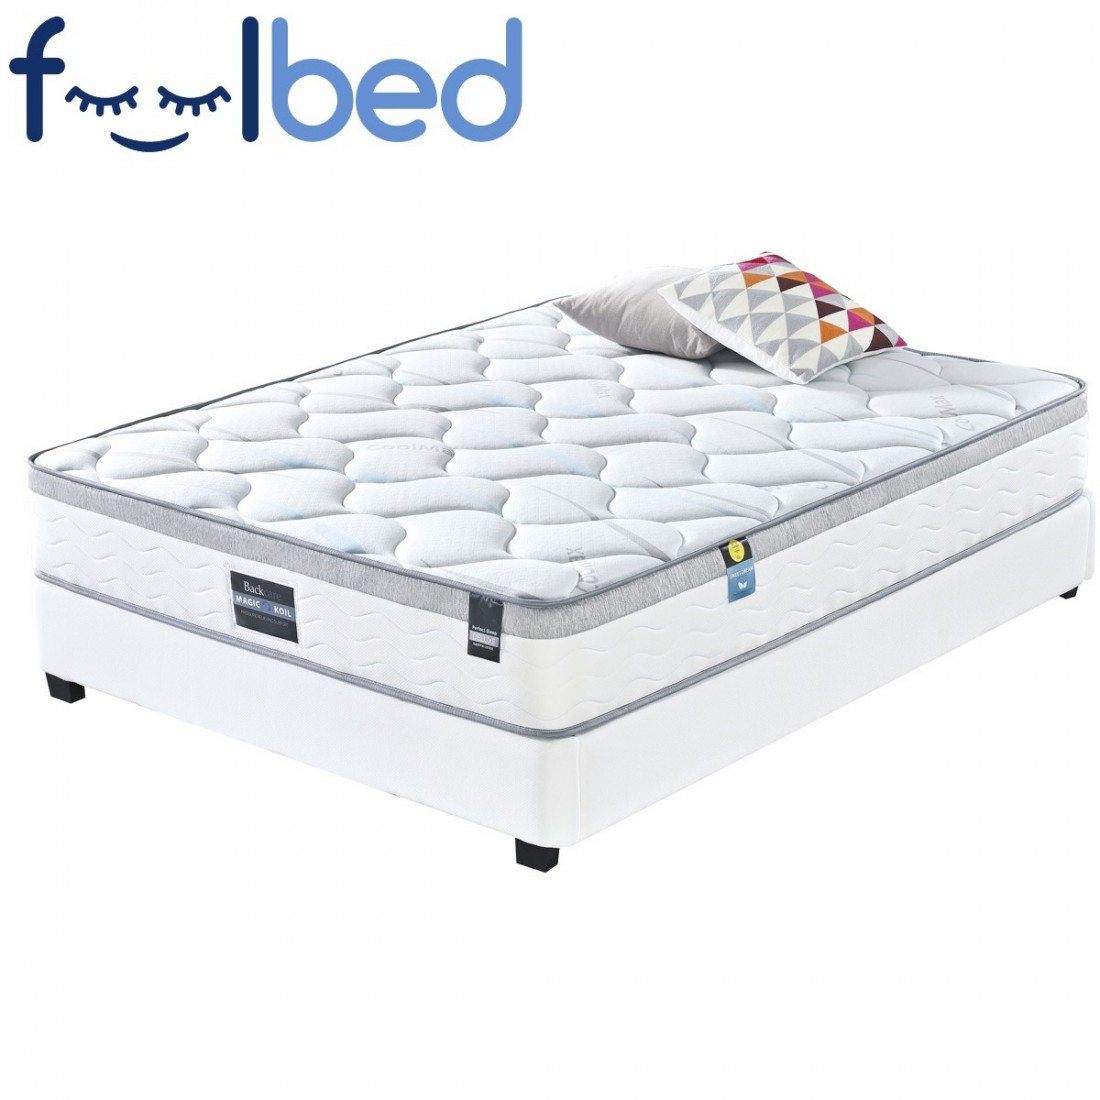 matelas confort latex beautiful voir tous les produits matelas en latex with matelas confort. Black Bedroom Furniture Sets. Home Design Ideas